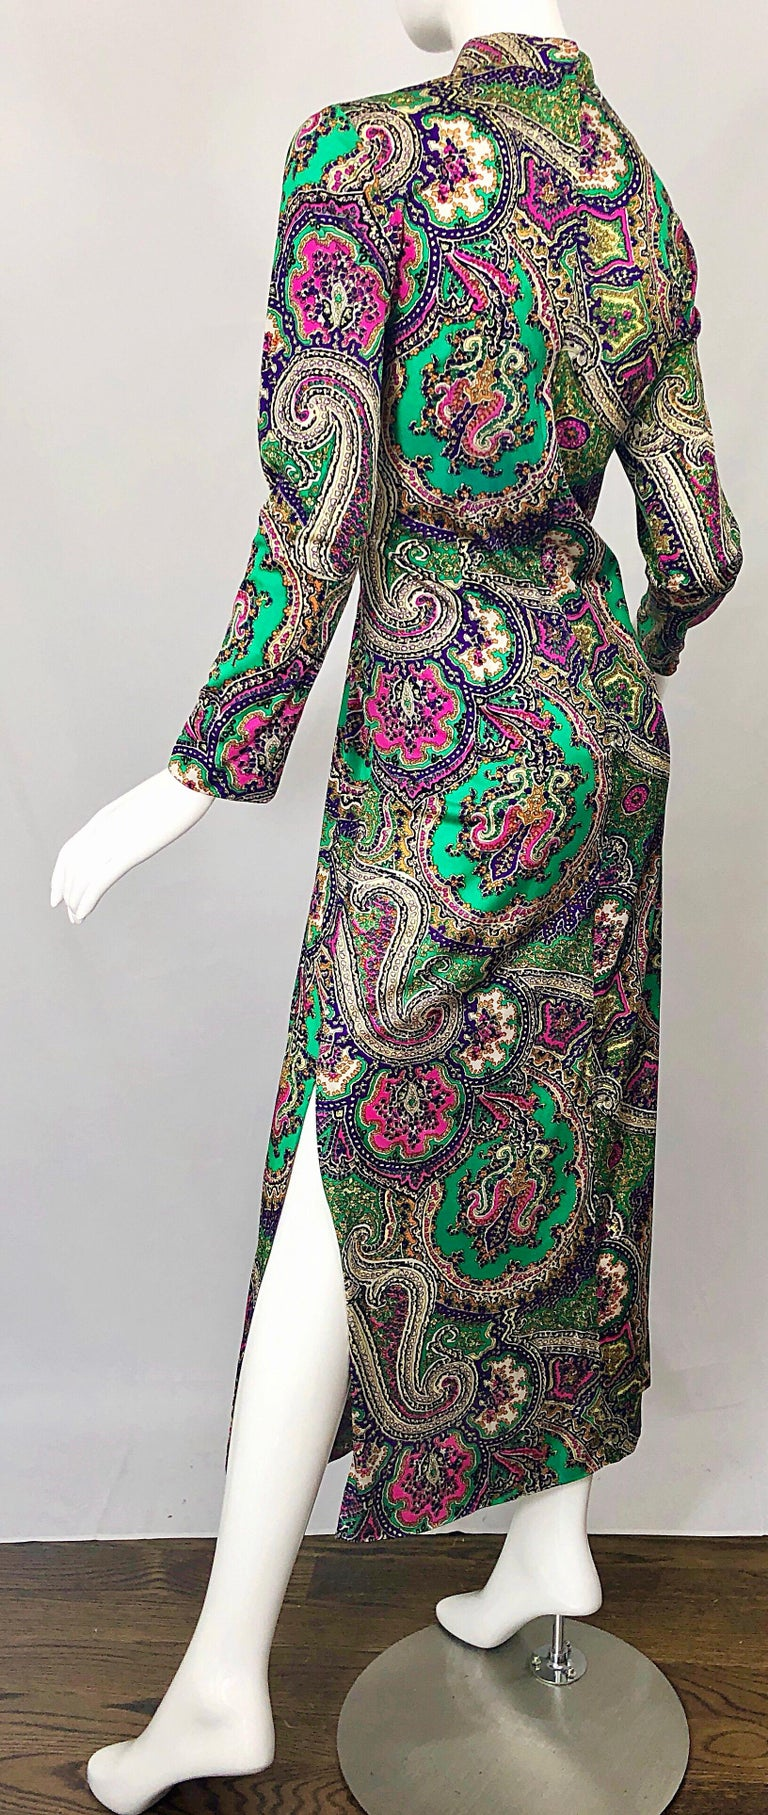 1970s Cheongsam Inspired Colorful Paisley Print Jersey Long Sleeve Maxi Dress For Sale 3